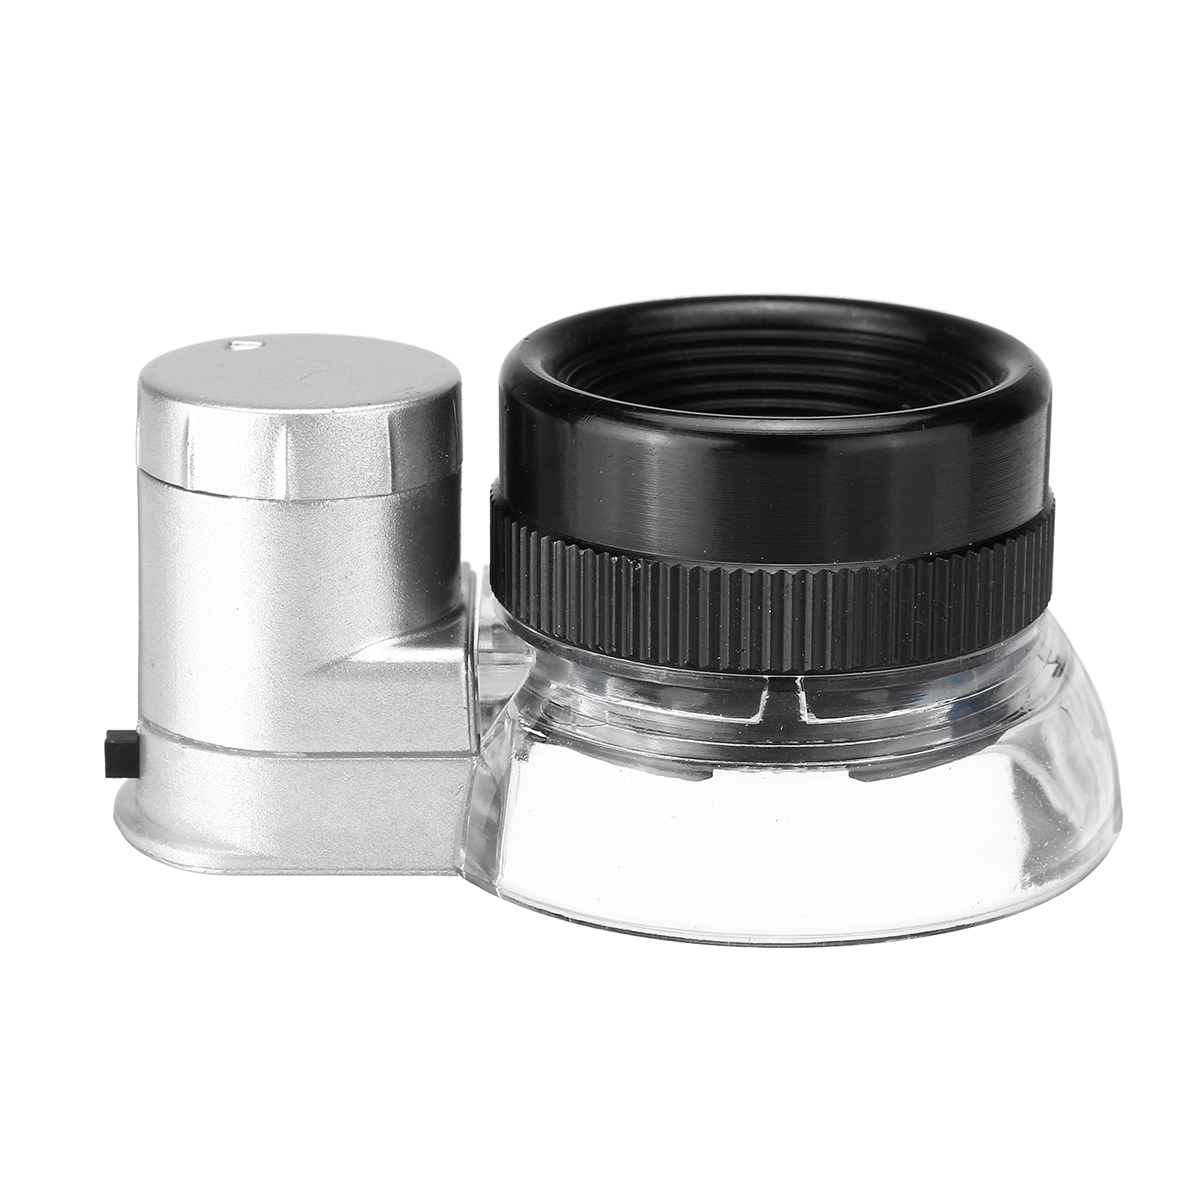 20X Magnification Magnifier LED Loupe Light Jewelry Optical Glass Magnifying